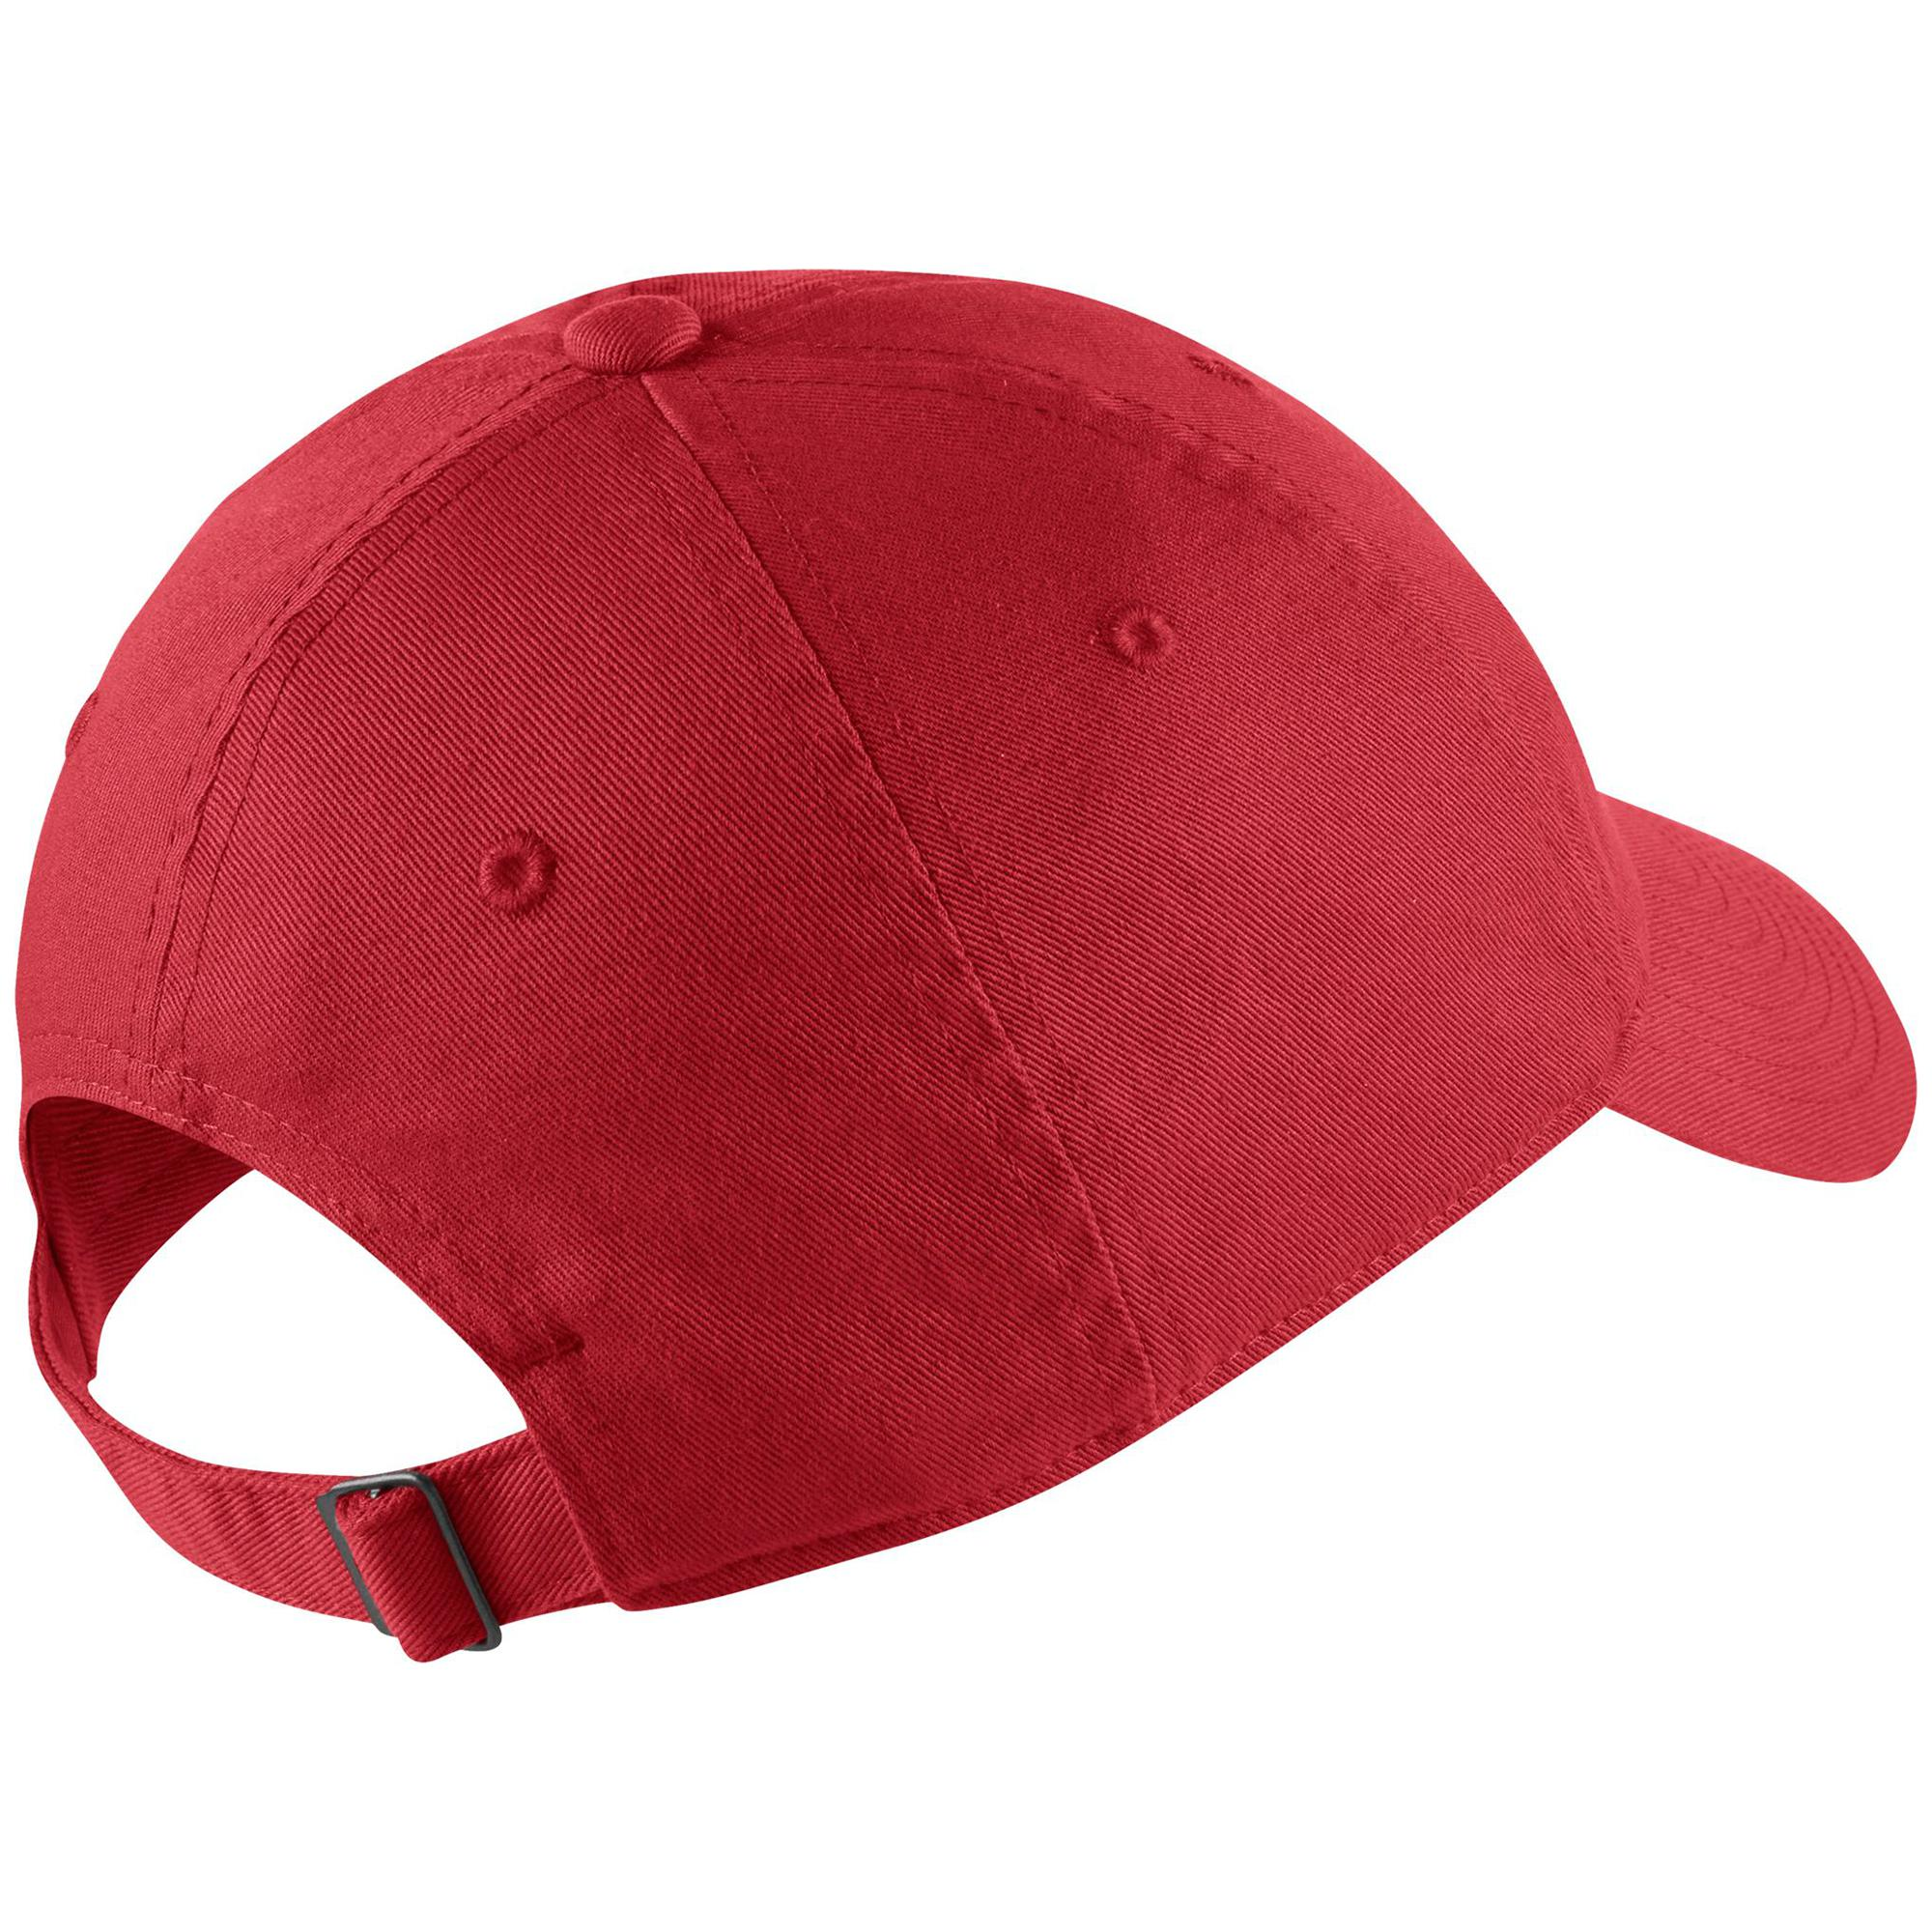 bd1784e5eaf Nike Womens Futura H86 Adjustable Cap - Track Red - Tennisnuts.com